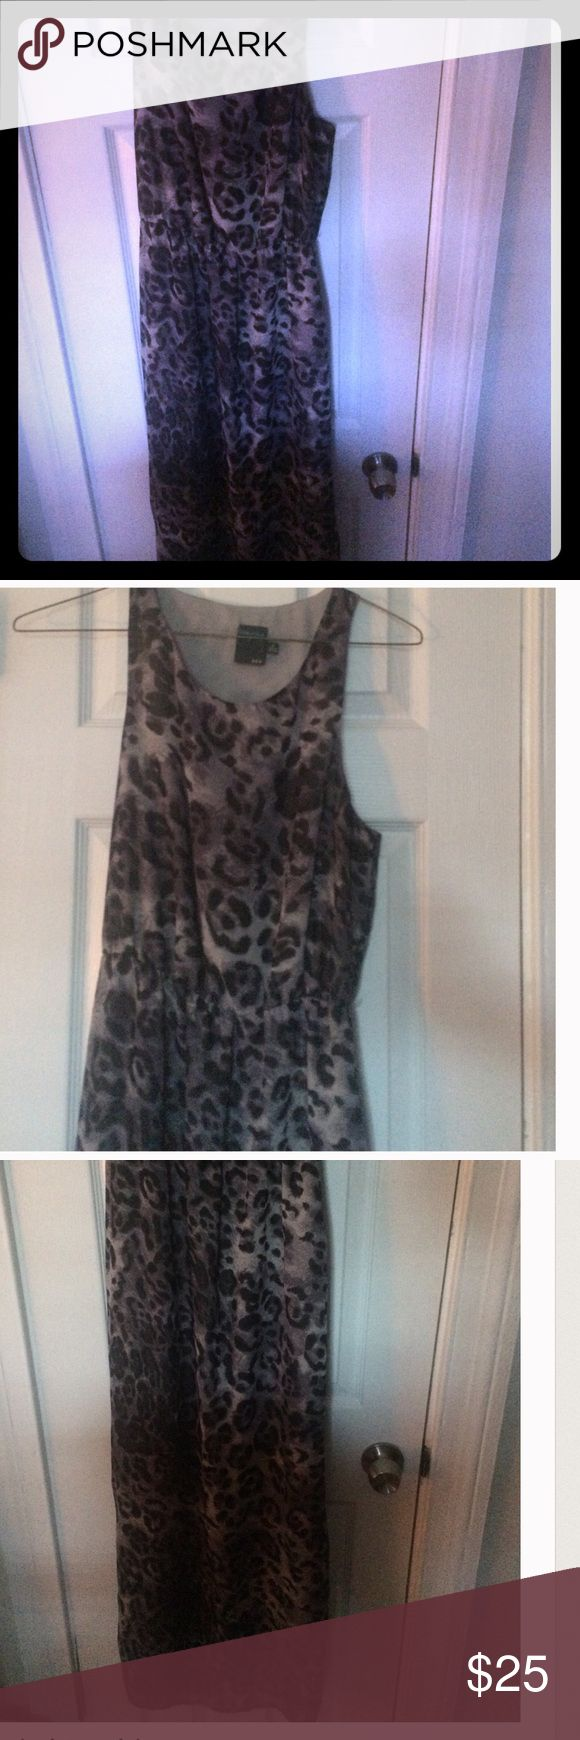 "Anthropologie Gabby Skye Leopard Maxi Dress 👗 Like new nylon loose fit with elastic waist dress. It features 2 slits on the sides that go up to just above your knees. I am 5'7"" and it the length goes to my ankles. Size 8. Anthropologie Dresses Maxi"